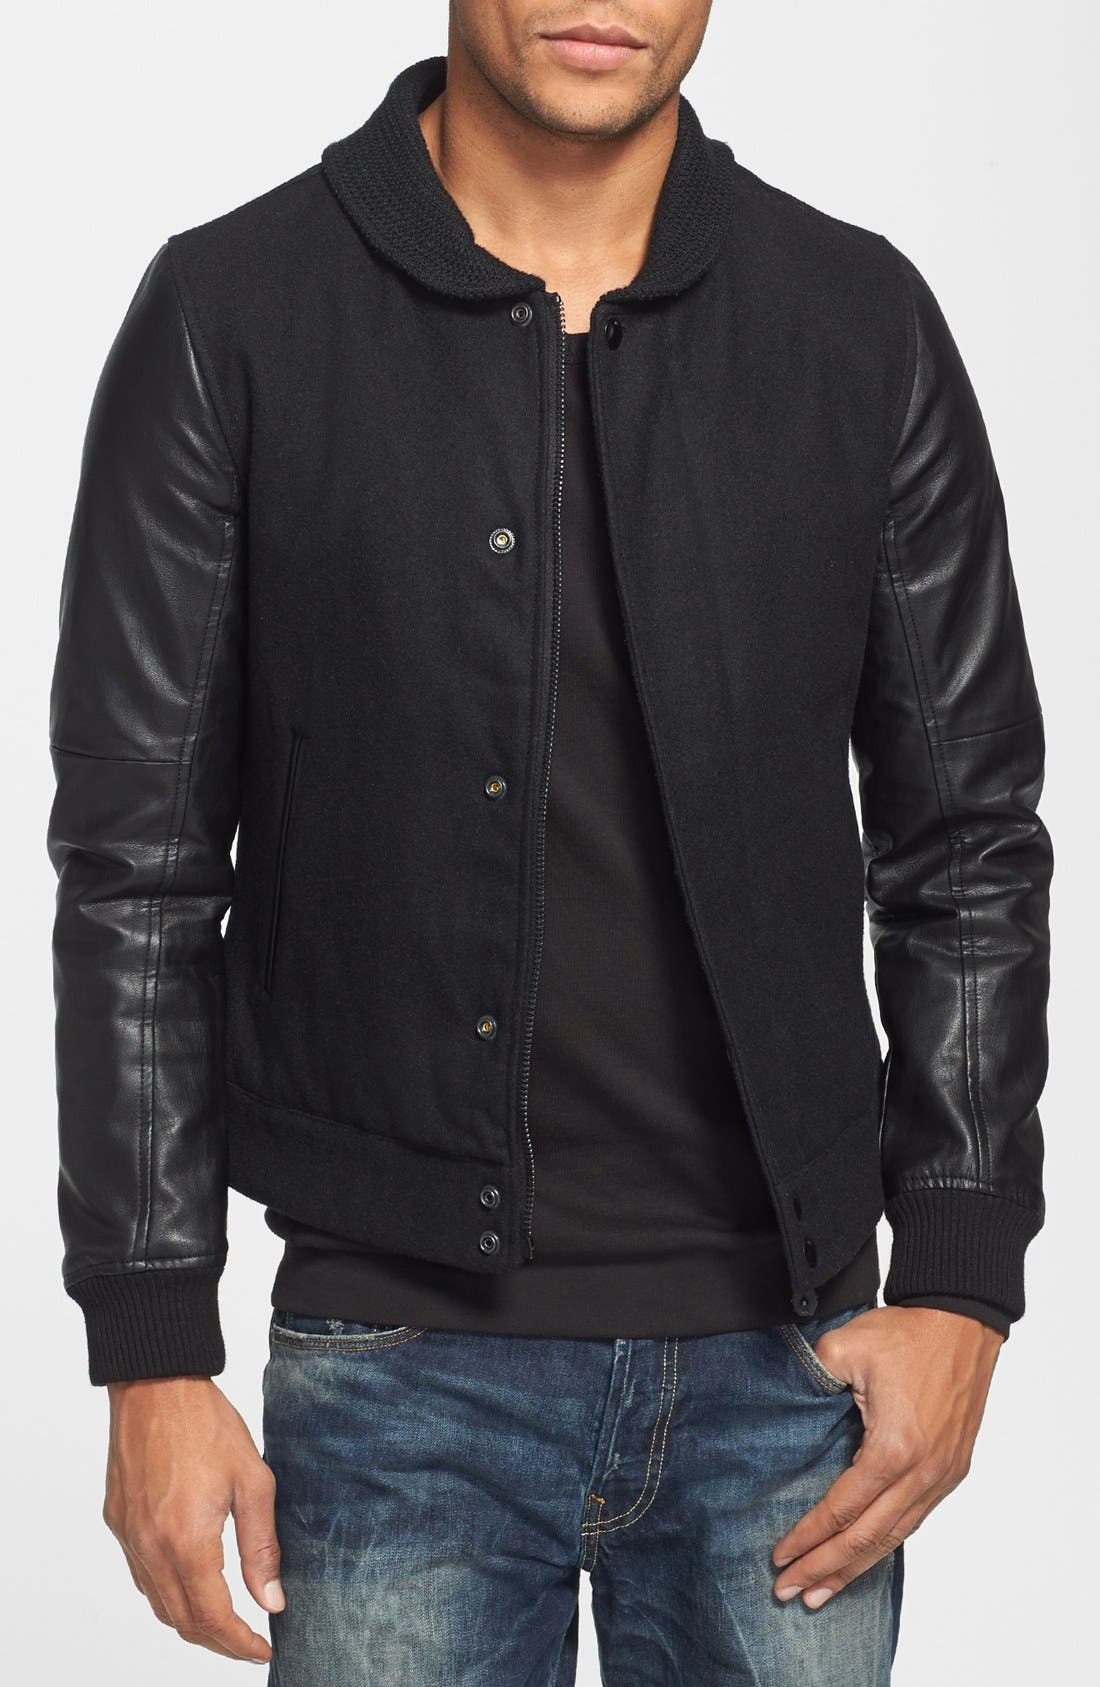 Alternate Image 1 Selected - G-Star Raw 'Thor' Wool Blend Bomber Jacket